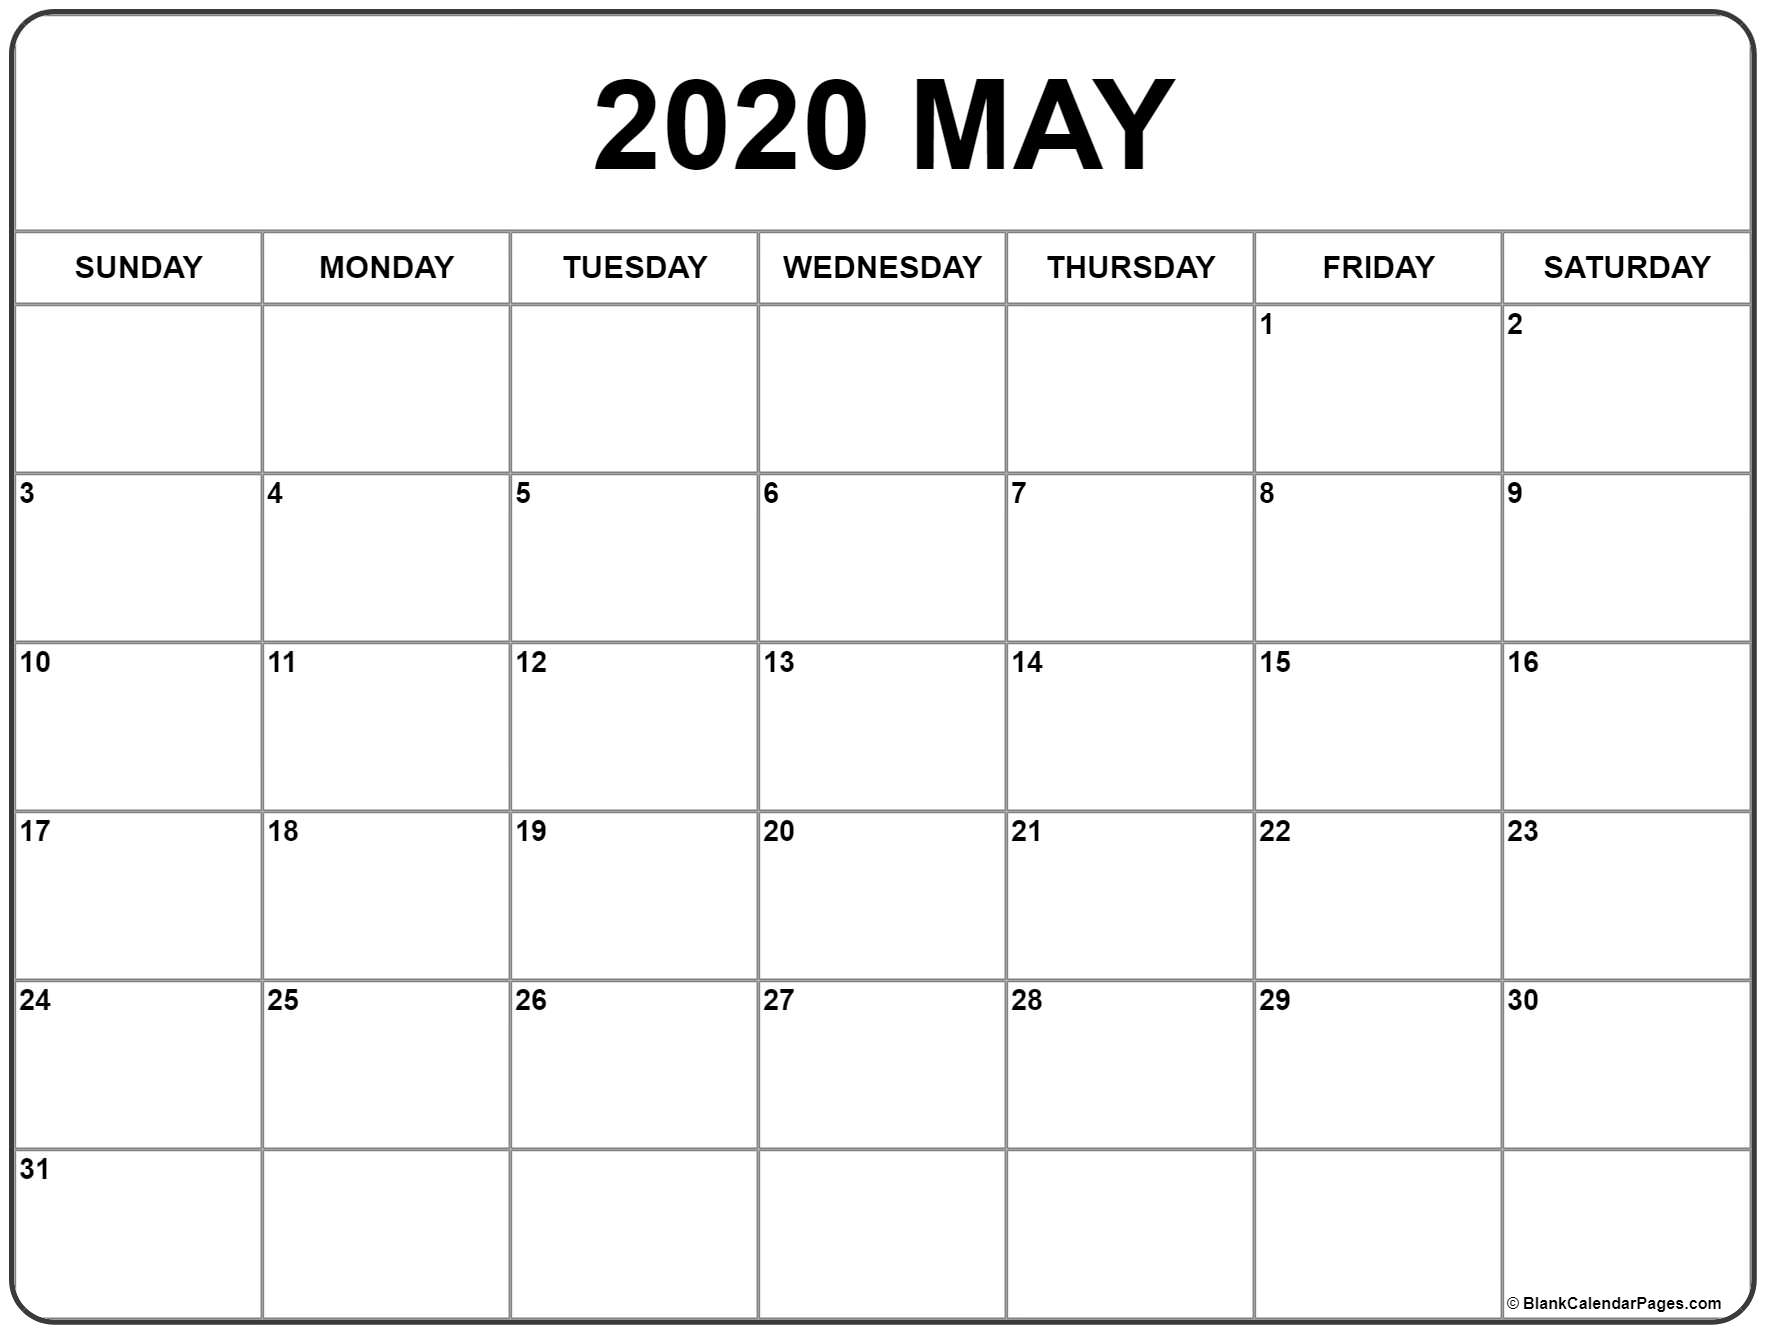 May 2020 Calendar | Free Printable Monthly Calendars inside Free Large Number Printable Calendars